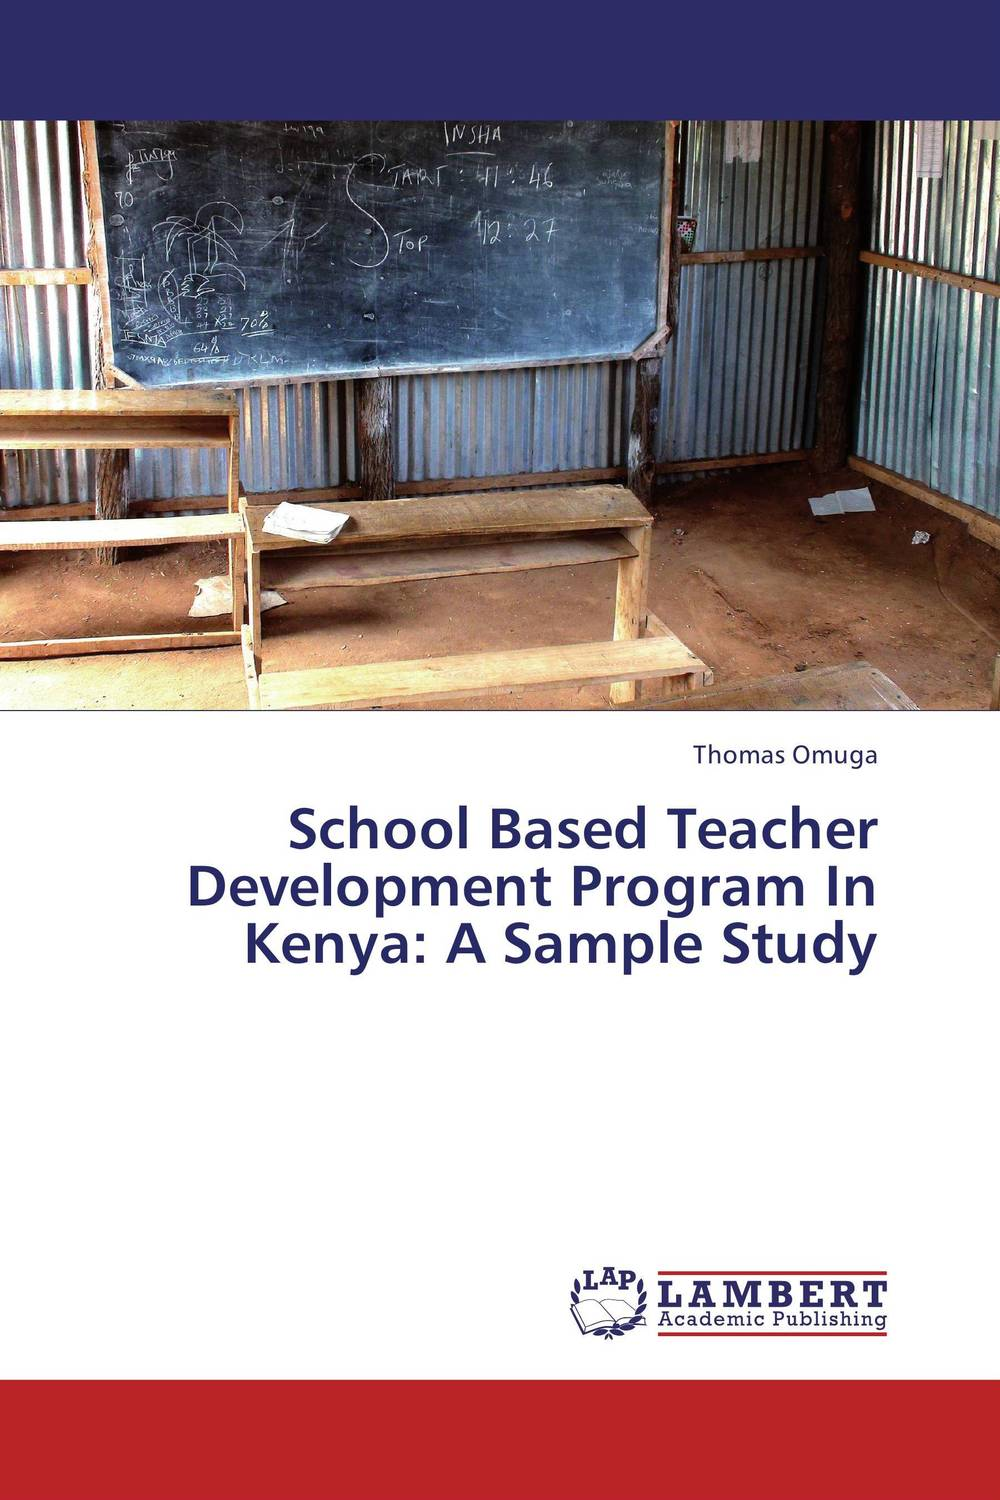 School Based Teacher Development Program In Kenya: A Sample Study teacher s use of english coursebooks with primary school learners